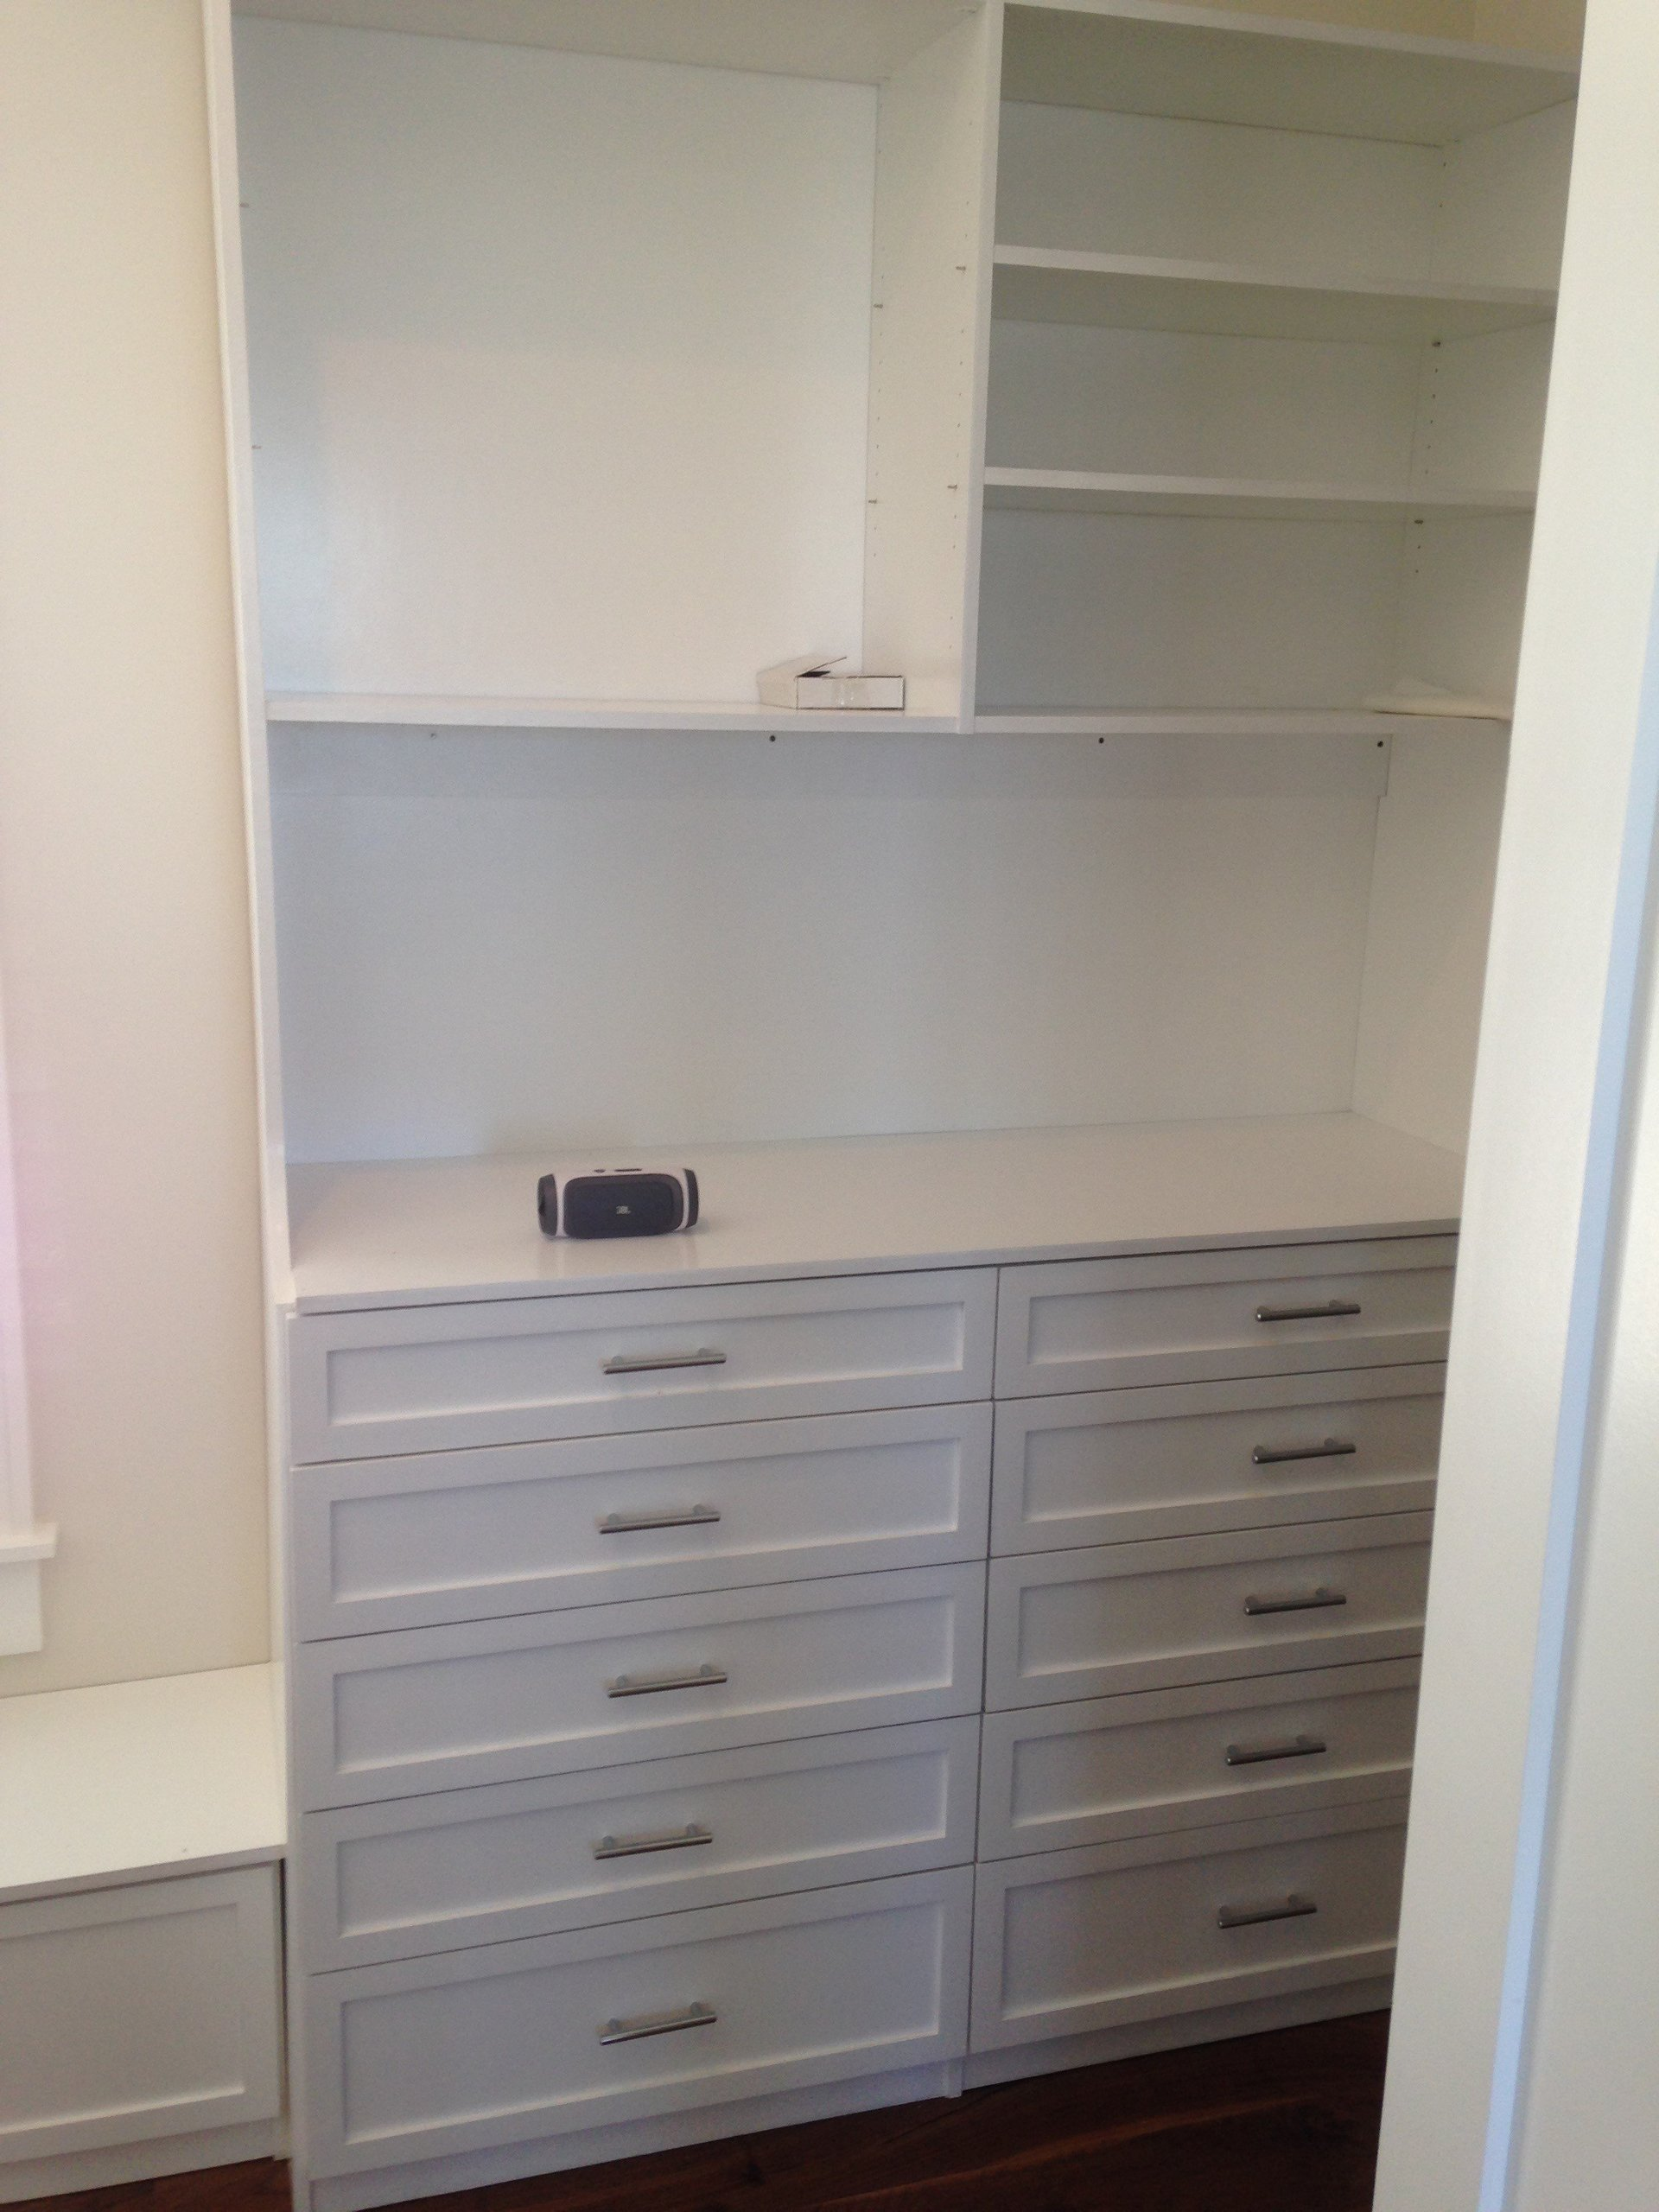 artful custom inc house kitchens brendan features bath donovan steam cabinet conceals unit island also show mcbournie furniture vanity shower closet master a co tropical this living built gary suite by